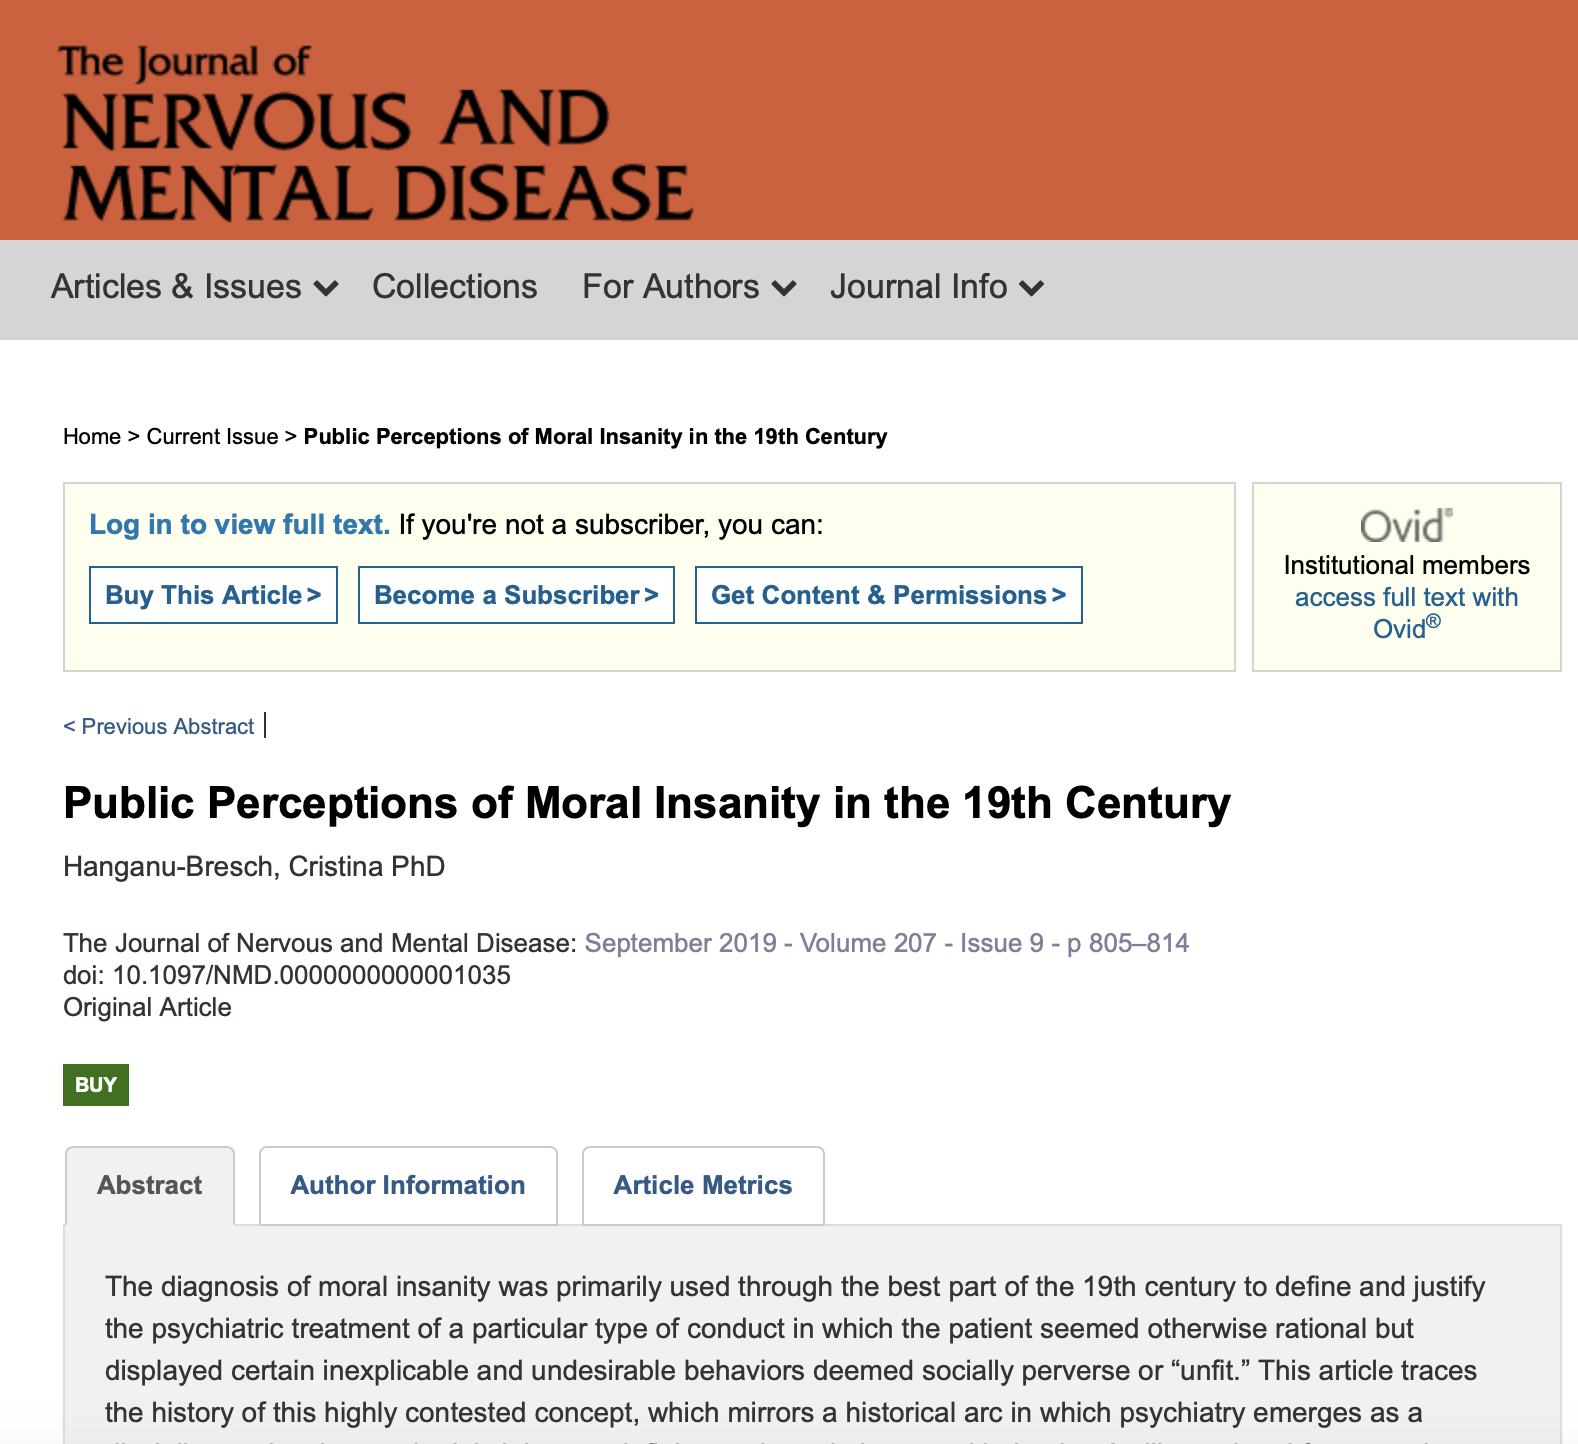 Public Perceptions of Moral Insanity in the 19th Century. Journal of Nervous and Mental Disease, September 2019.